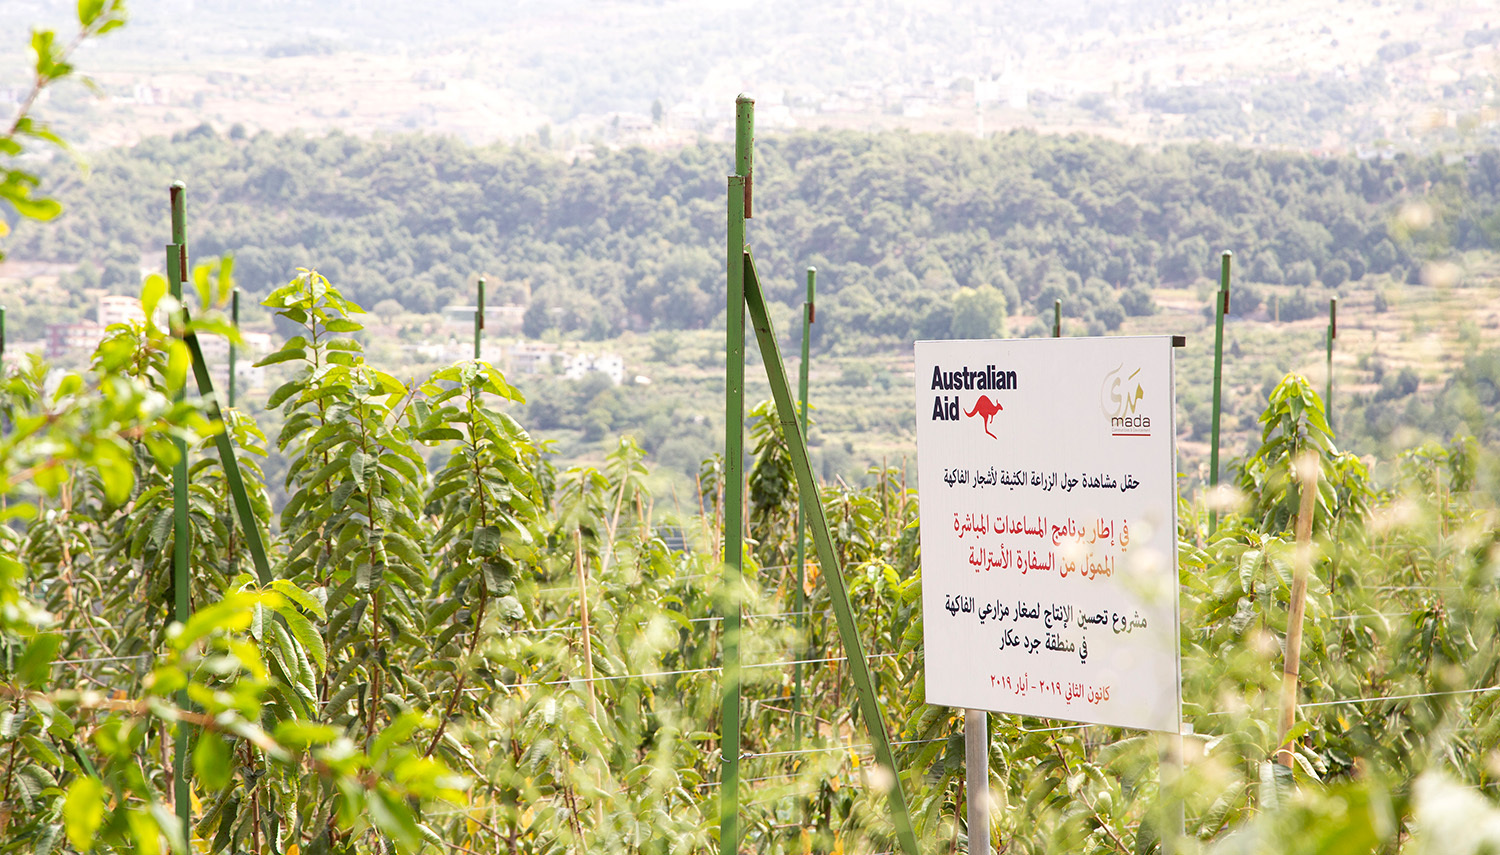 Improves Production for Small-Scale Fruit Growers in Akkar Highlands